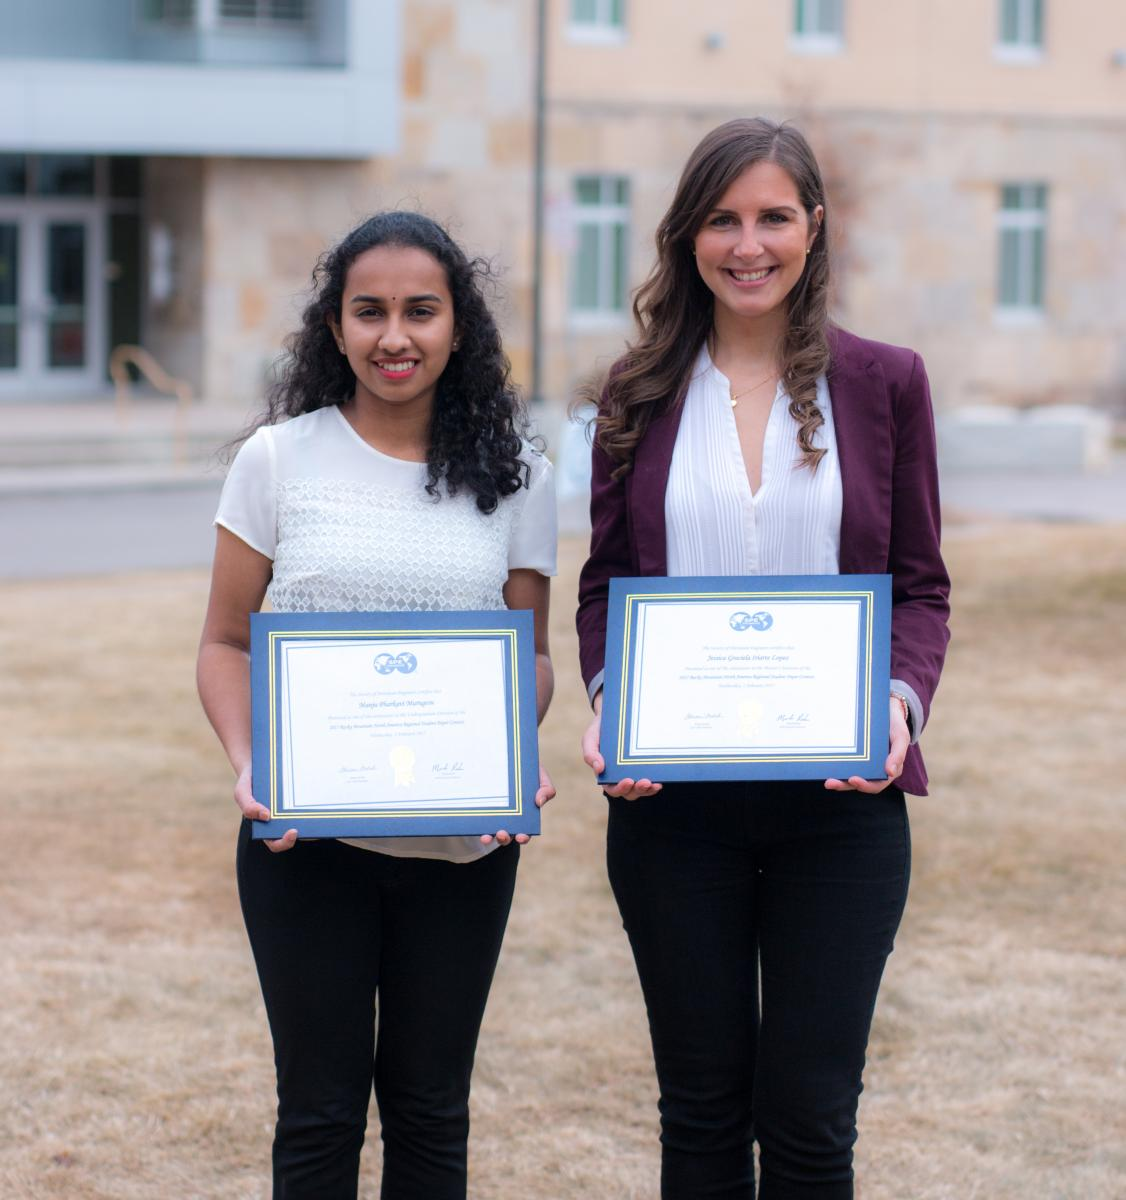 Manju and Jessica with their award plaques.